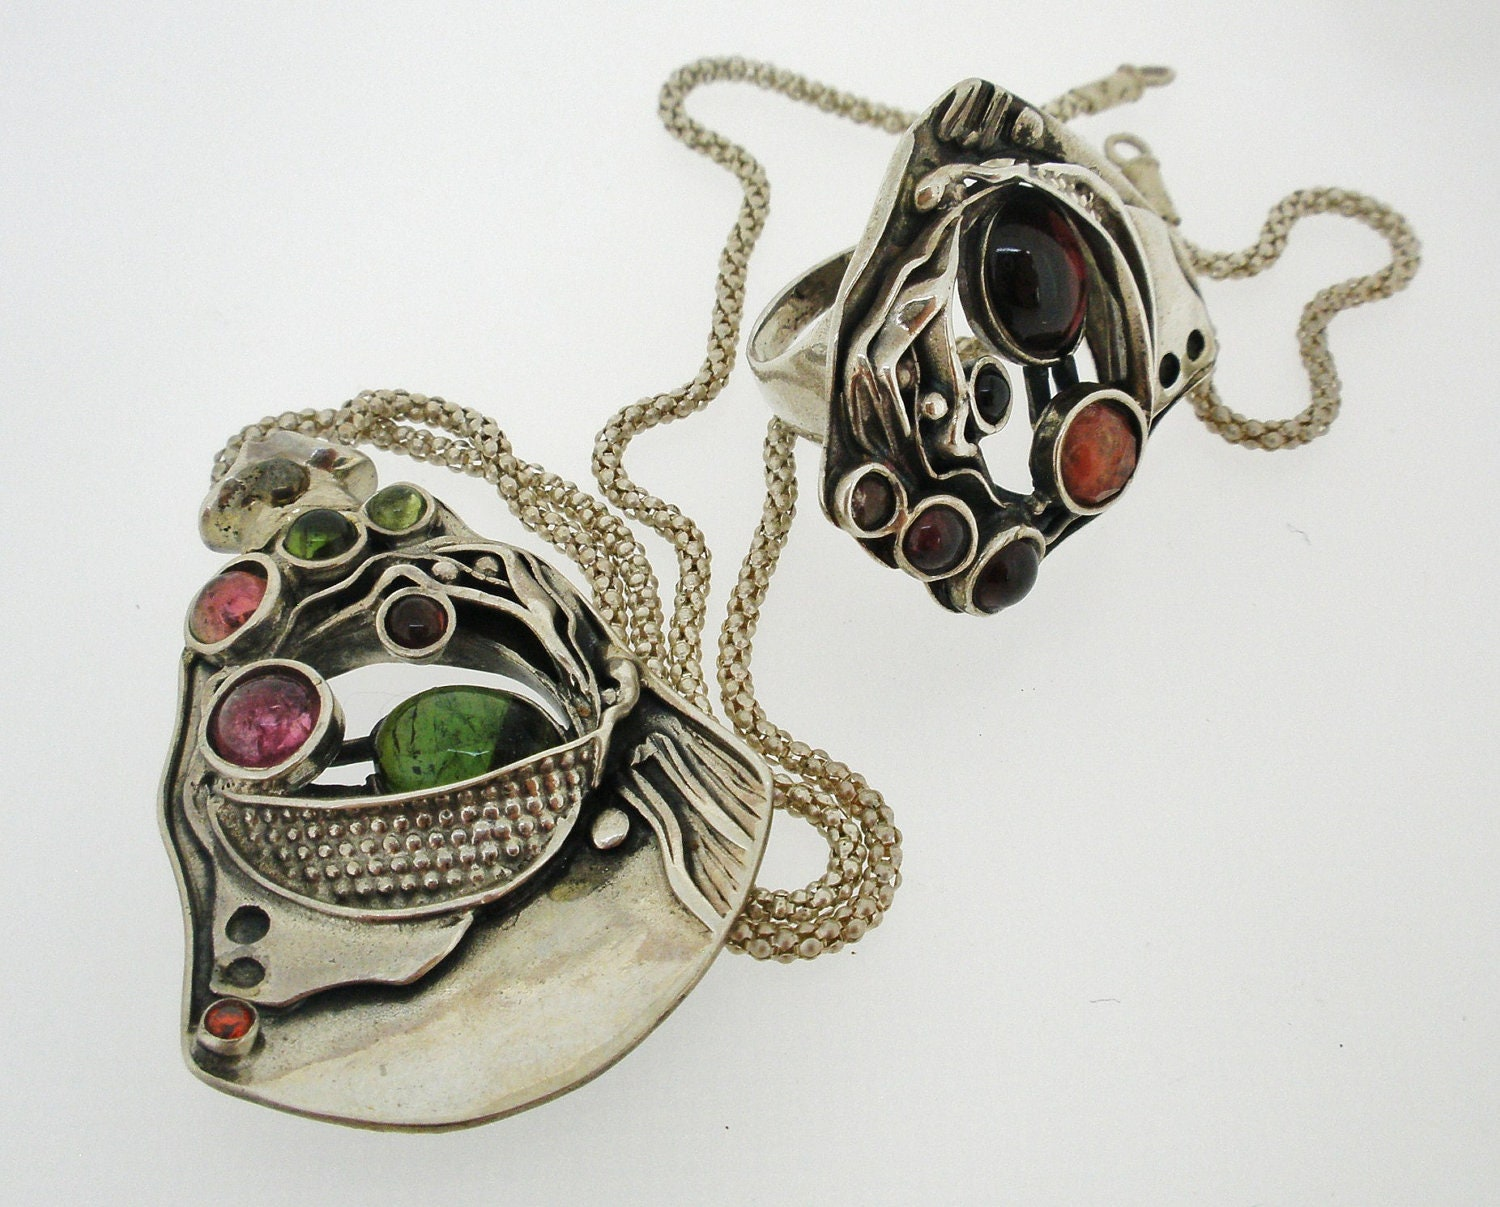 Handcrafted Sterling Silver Necklace and Semi Precious Tourmaline Stone Design by Poran. Made In Israel